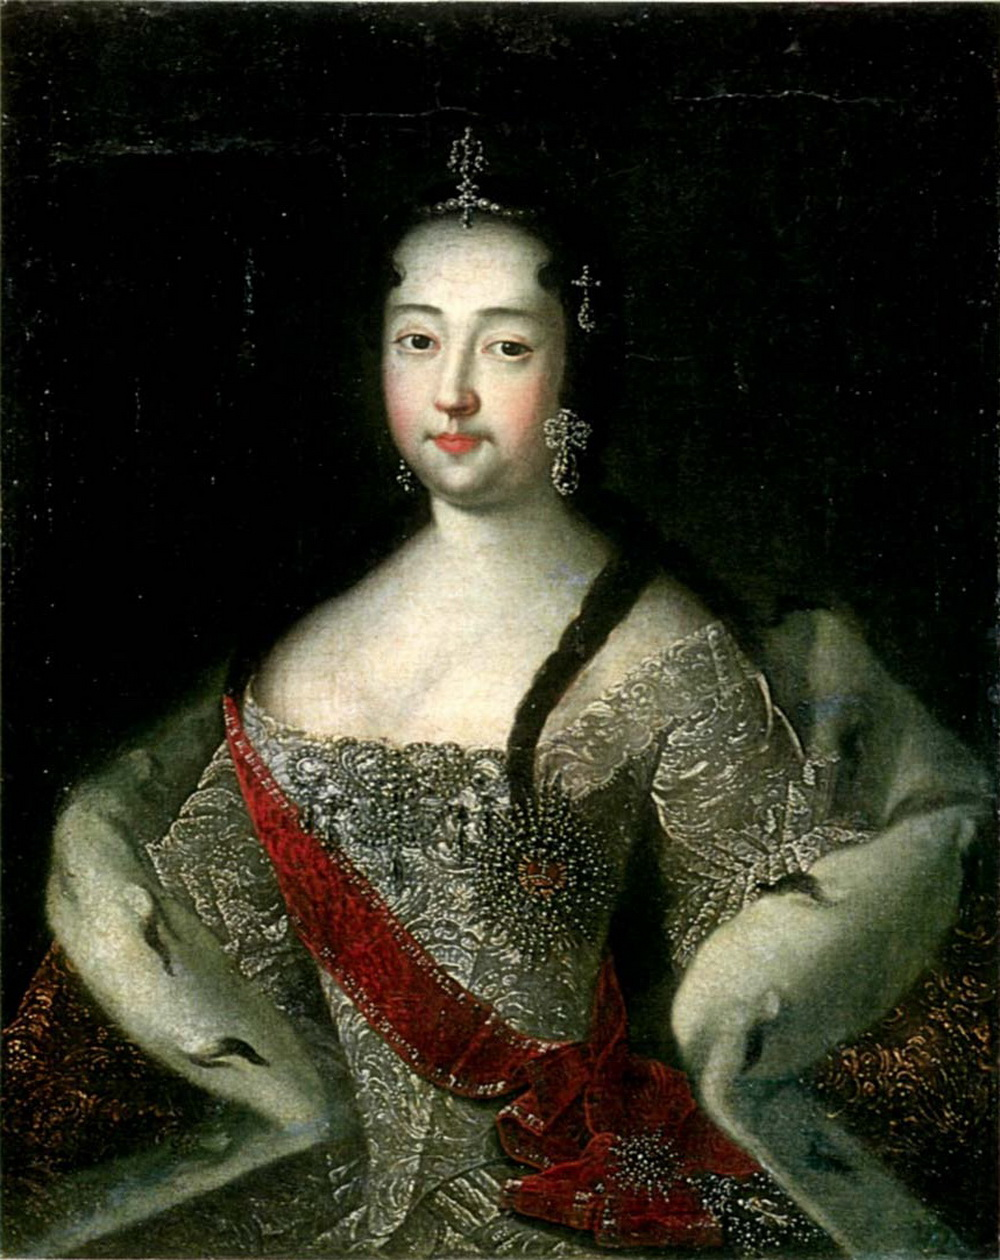 portrait of princess anna petrovna adolsky ivan women s portrait of princess anna petrovna adolsky ivan 4 women s portraits 18th century hall